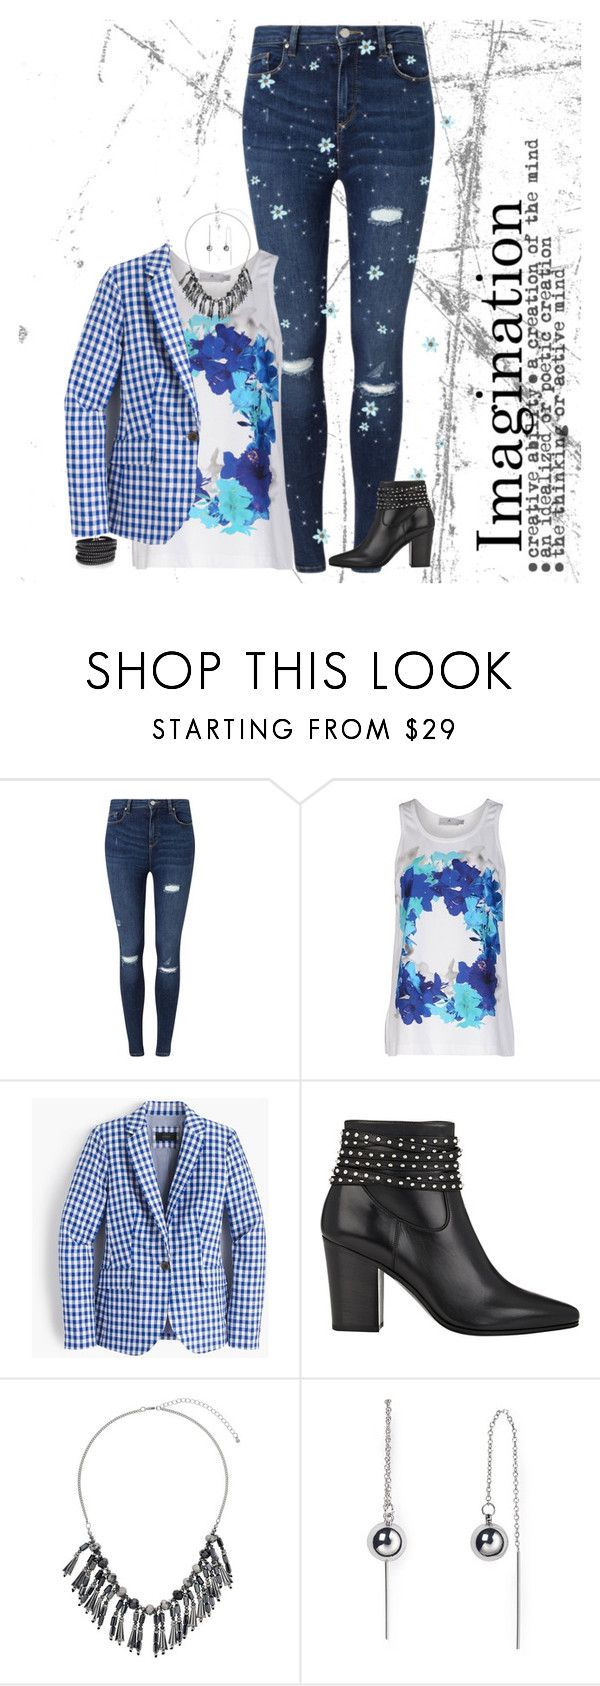 """""""Untitled #406"""" by priscilla14ster on Polyvore featuring Miss Selfridge, adidas, J.Crew, Yves Saint Laurent, Dorothy Perkins, Rebecca Minkoff, Sif Jakobs Jewellery, ootd and Diva"""